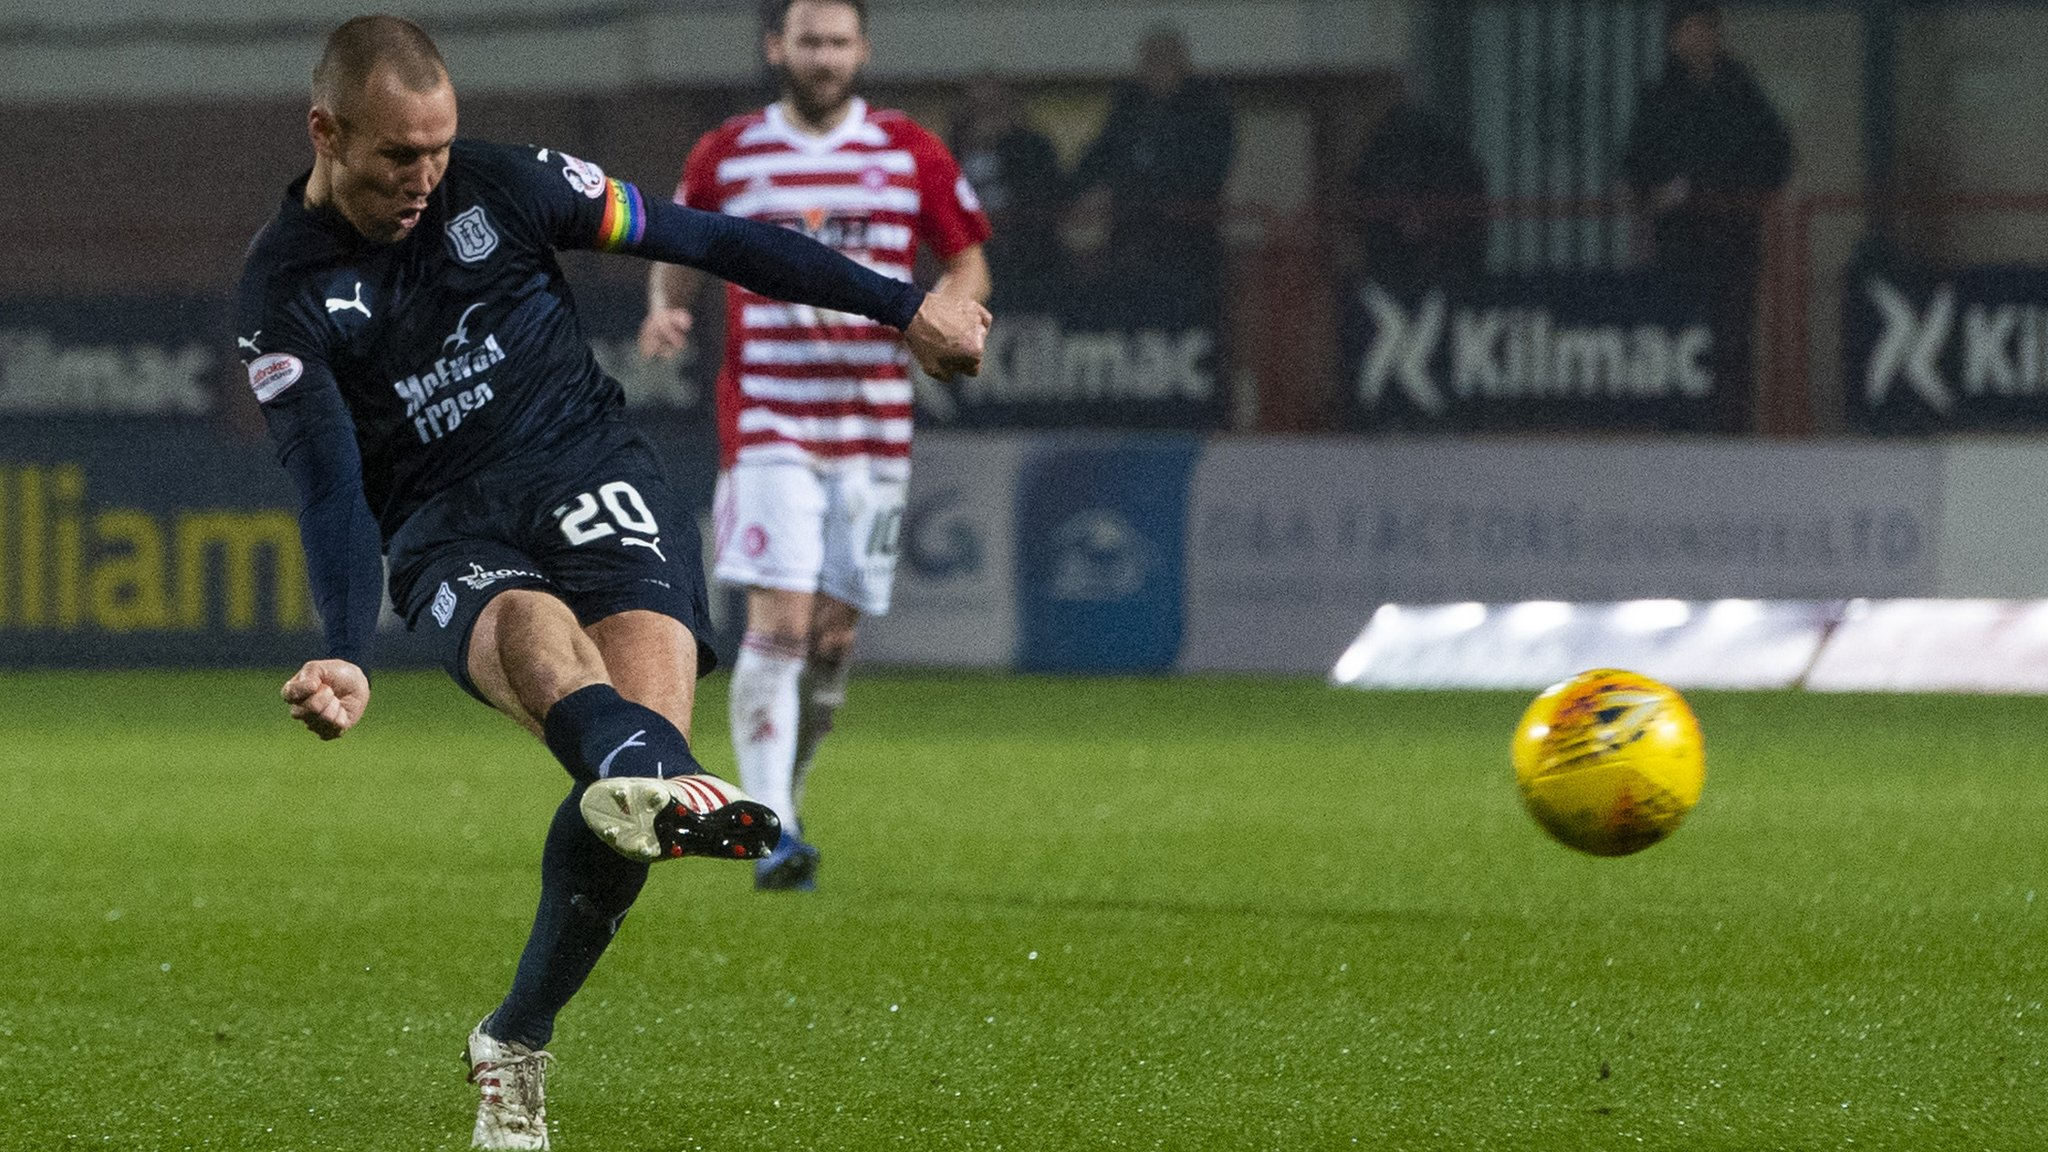 Dundee 4-0 Hamilton: Kenny Miller scores a hat-trick in win